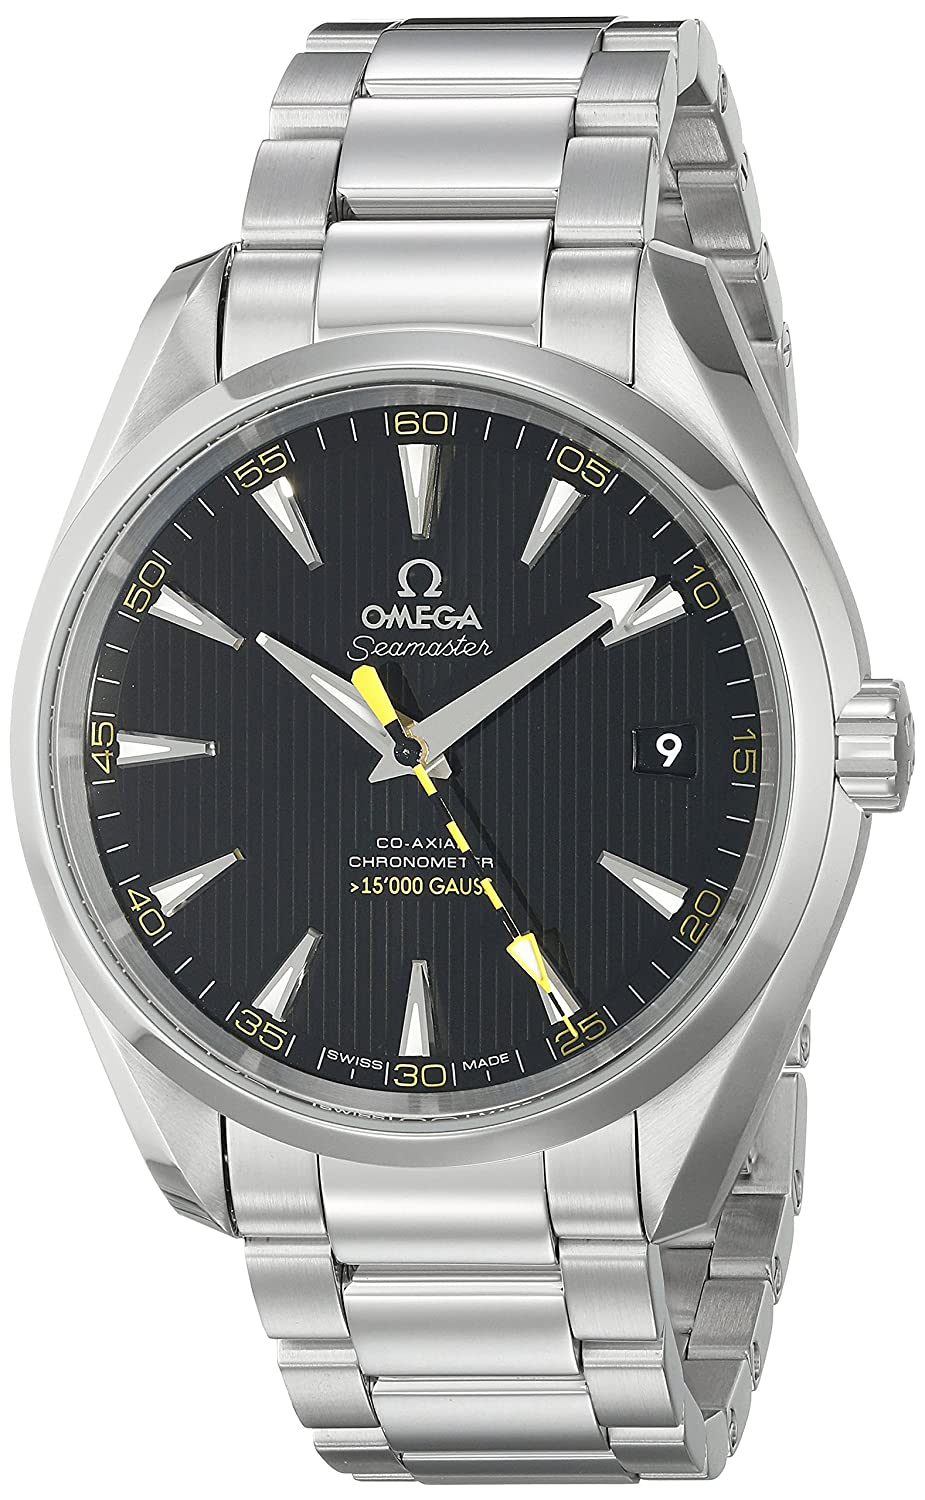 84a195de184 Amazon.com  Omega Men s 23110422101002 Seamaster150 Analog Display Swiss  Automatic Silver Watch  Watches